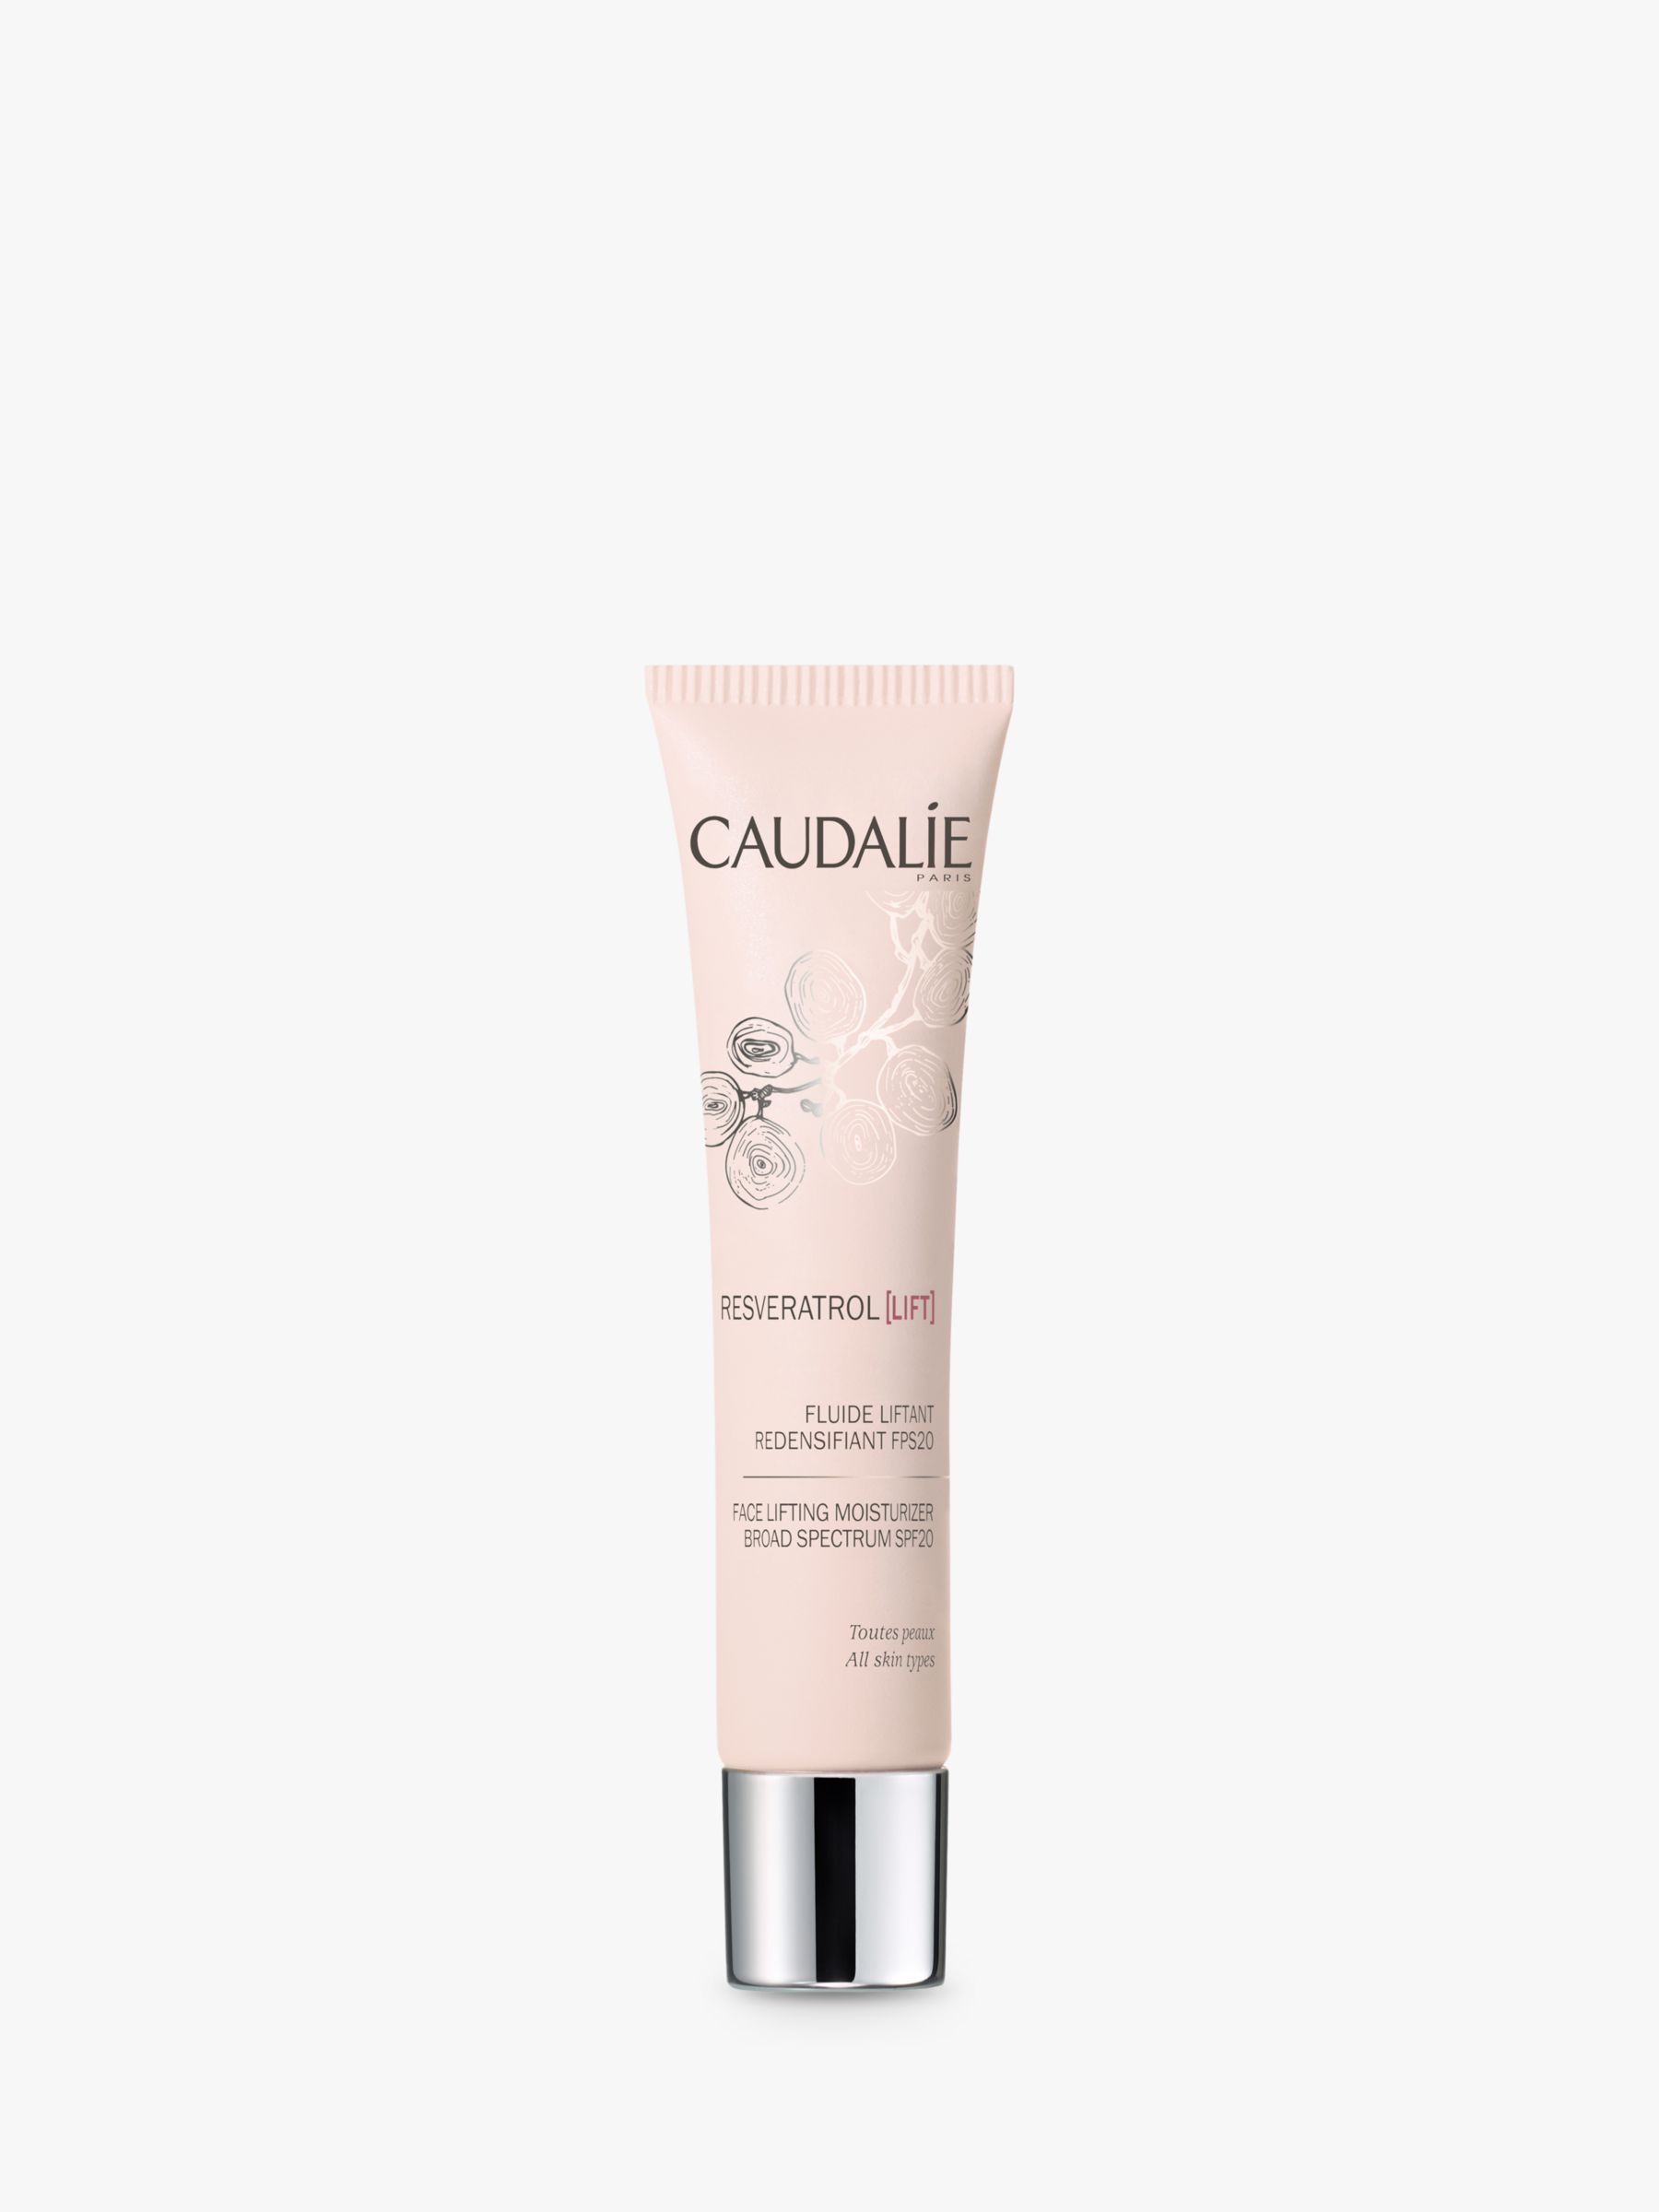 Caudalie Caudalie Resveratrol Lift Face Lifting Moisturiser Broad Spectrum SPF20, 40ml